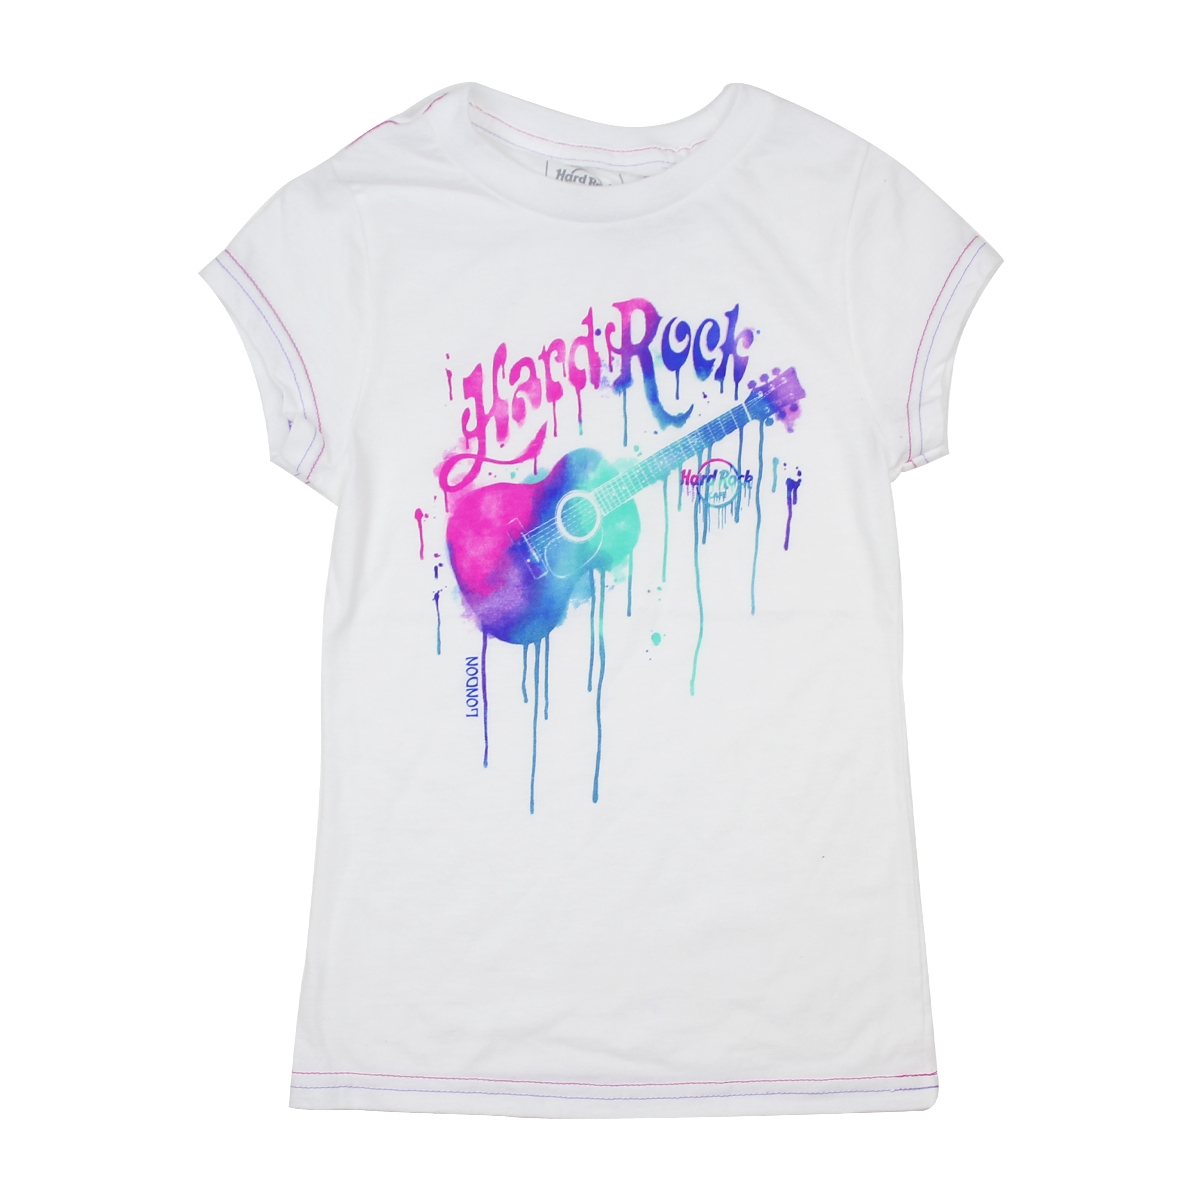 Girls White Paint Drip Guitar Tee, London 0